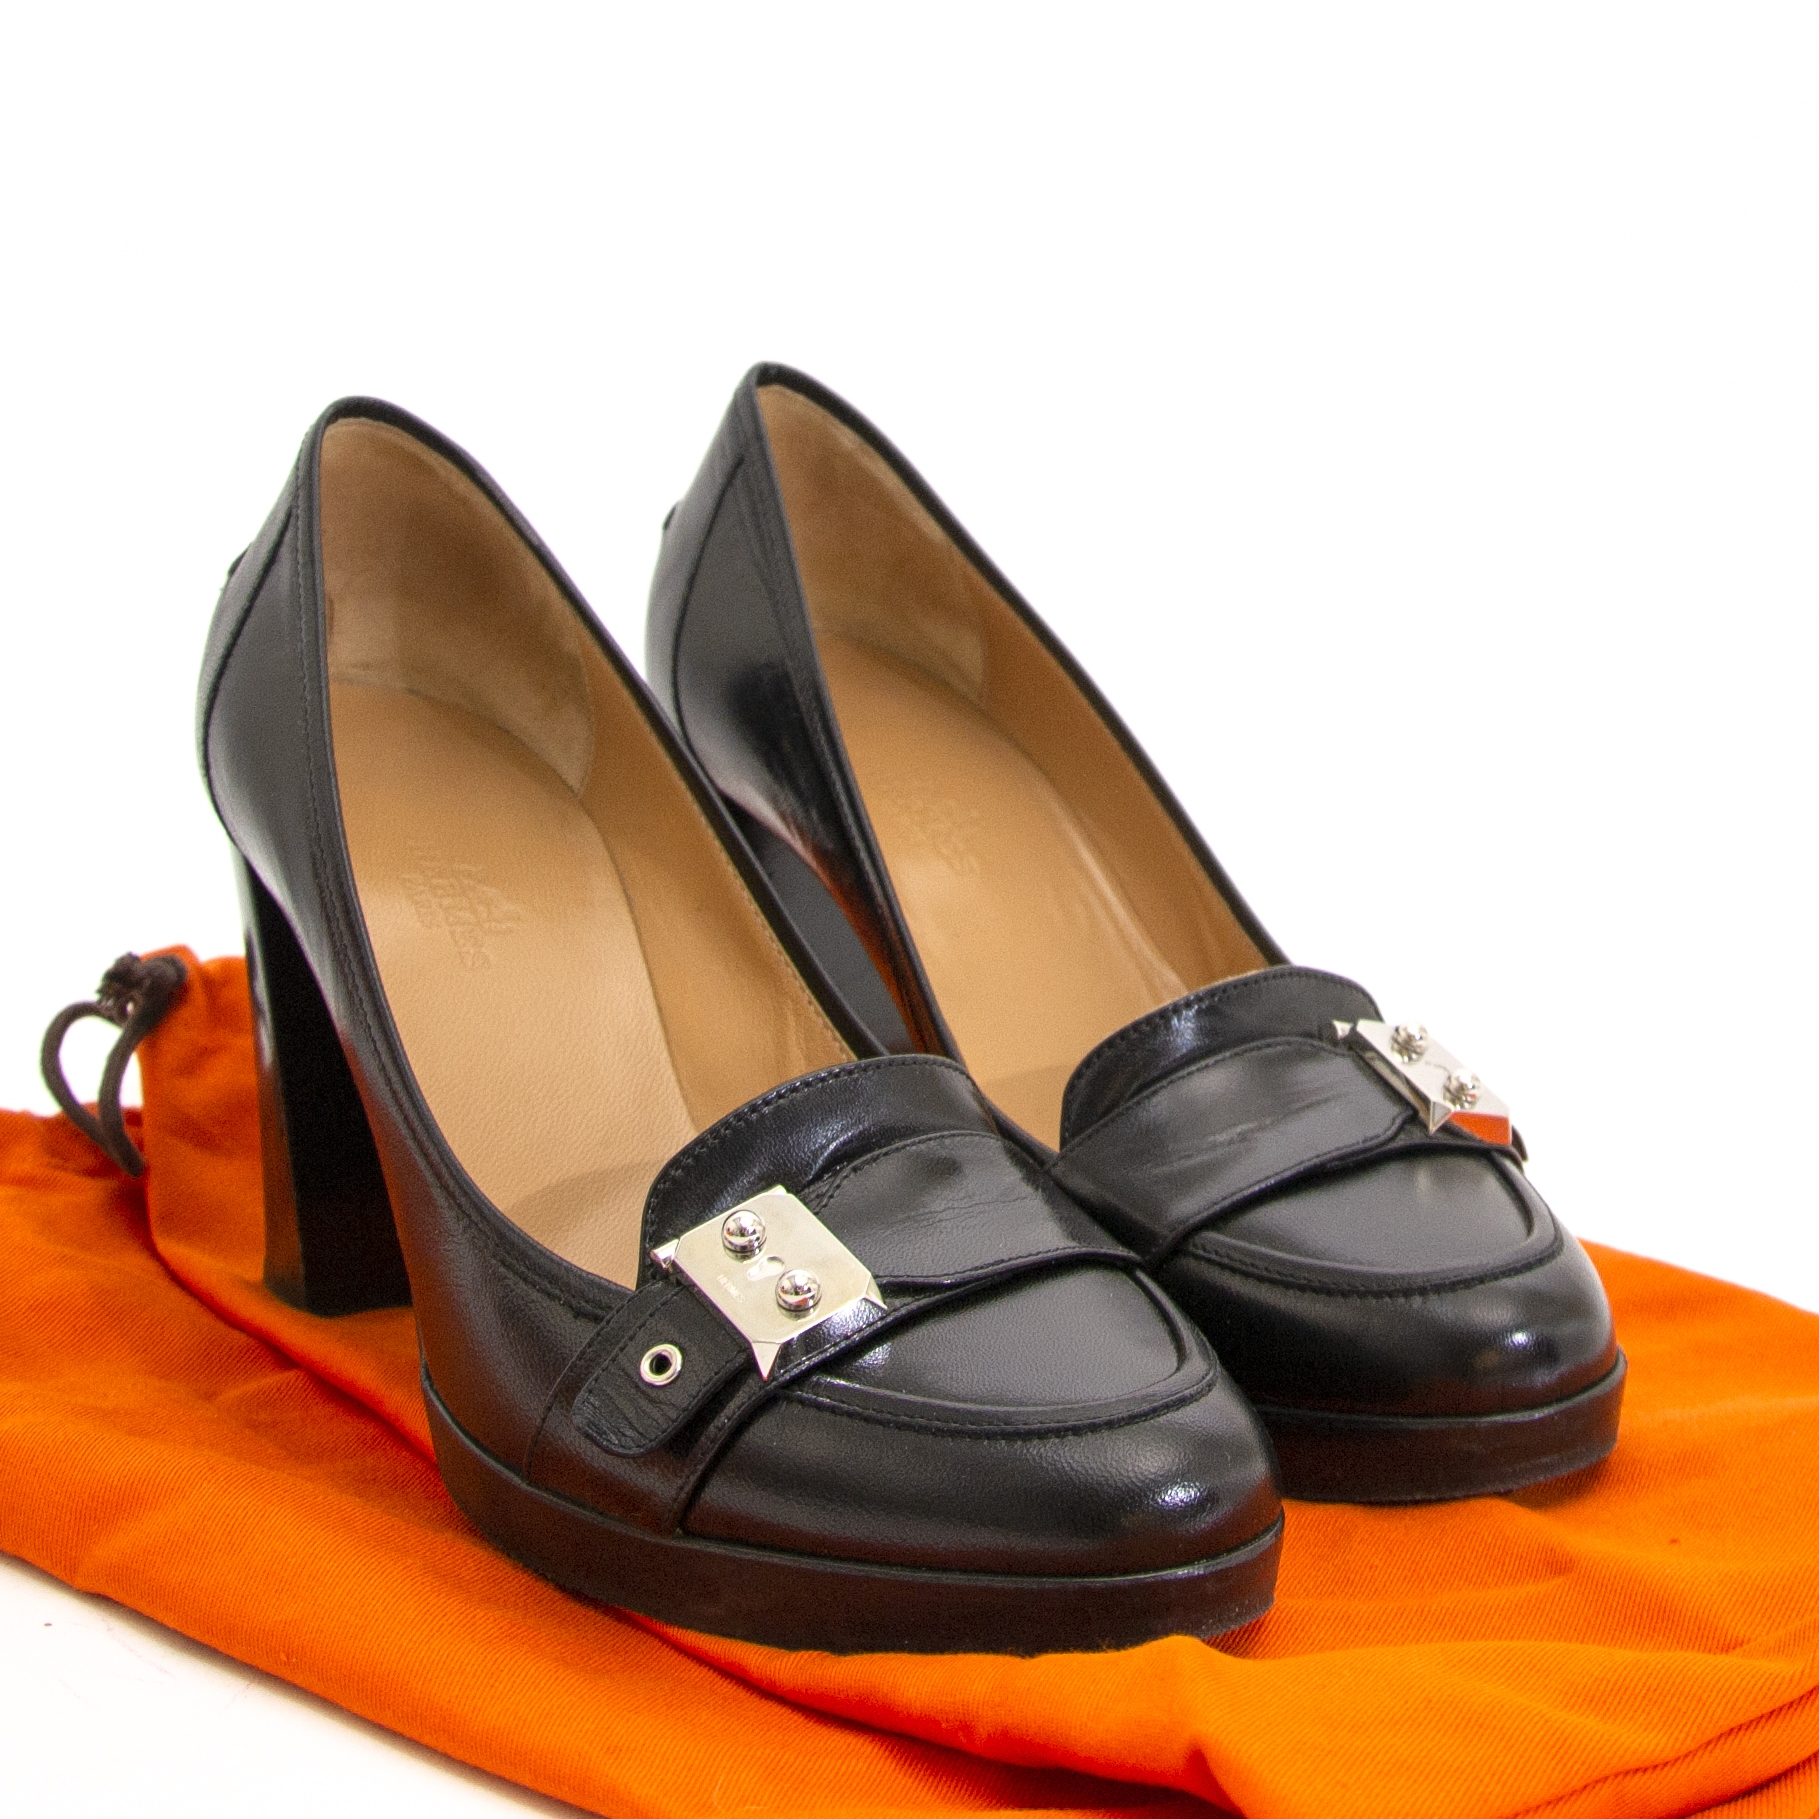 Hermes Black Leather Heeled Loafers - Size 38.5 now for sale at labellov vintage fashion webshop belgium